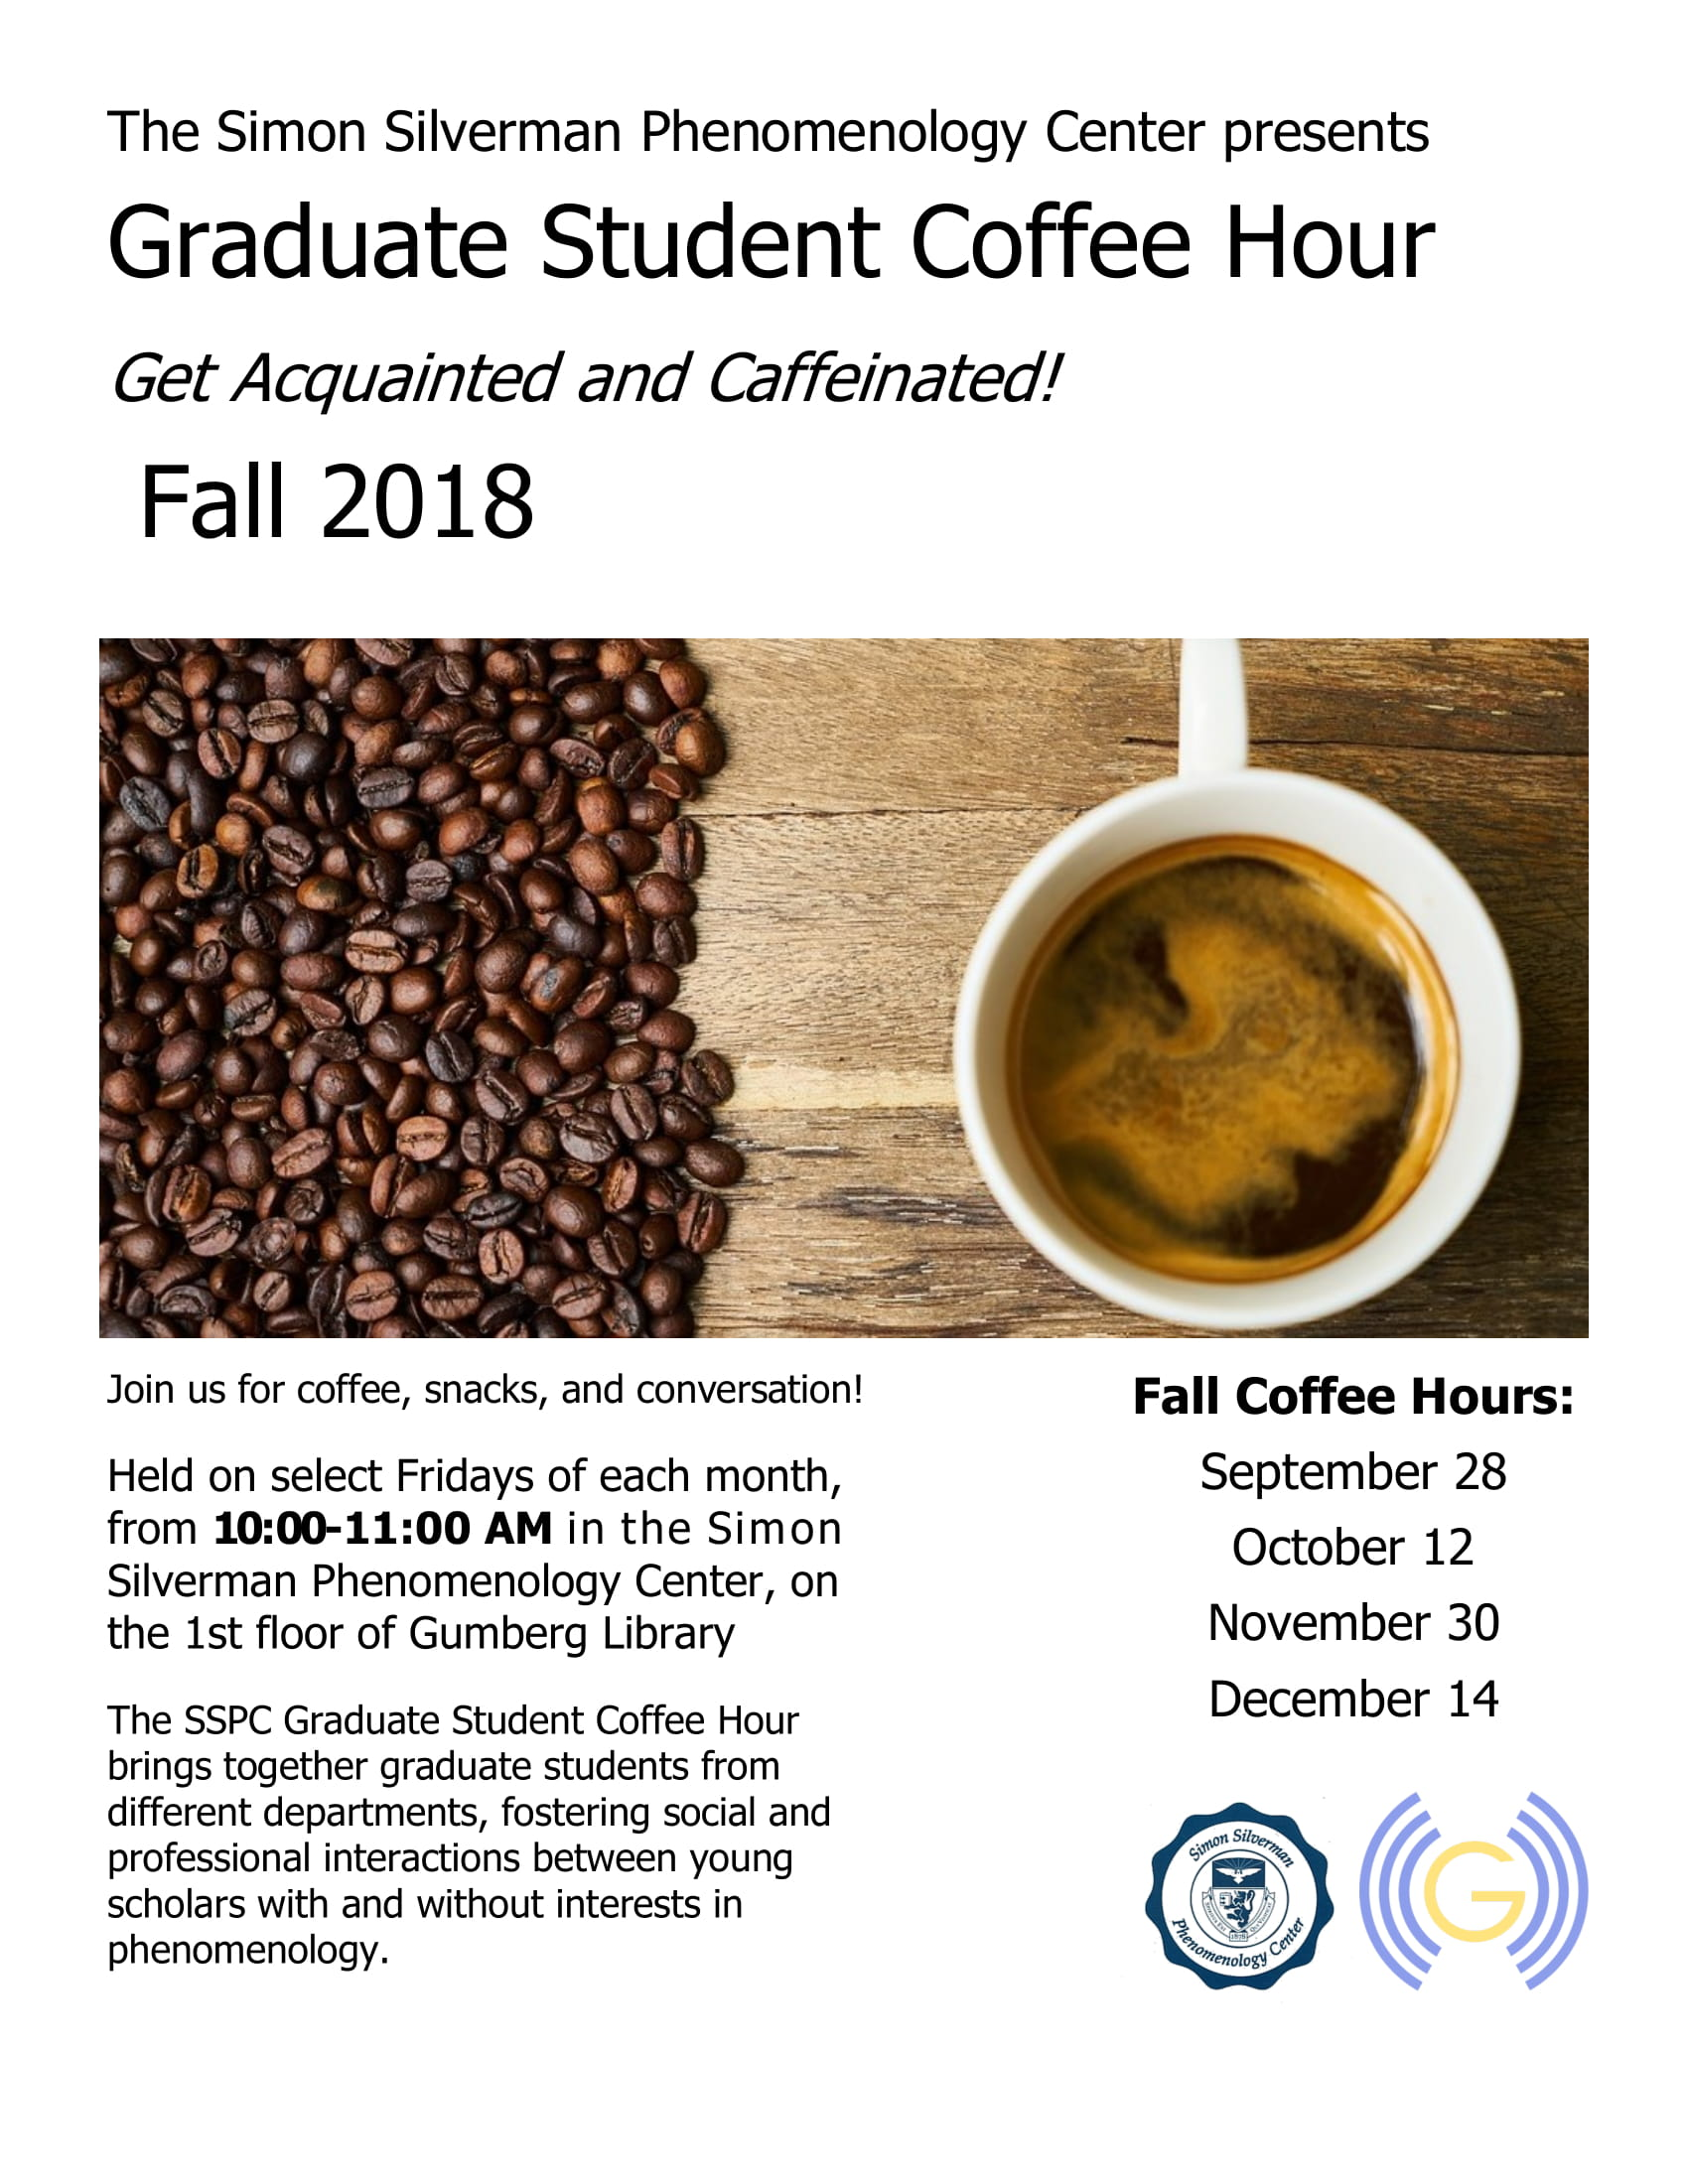 SSPC Graduate Student Coffee Hour